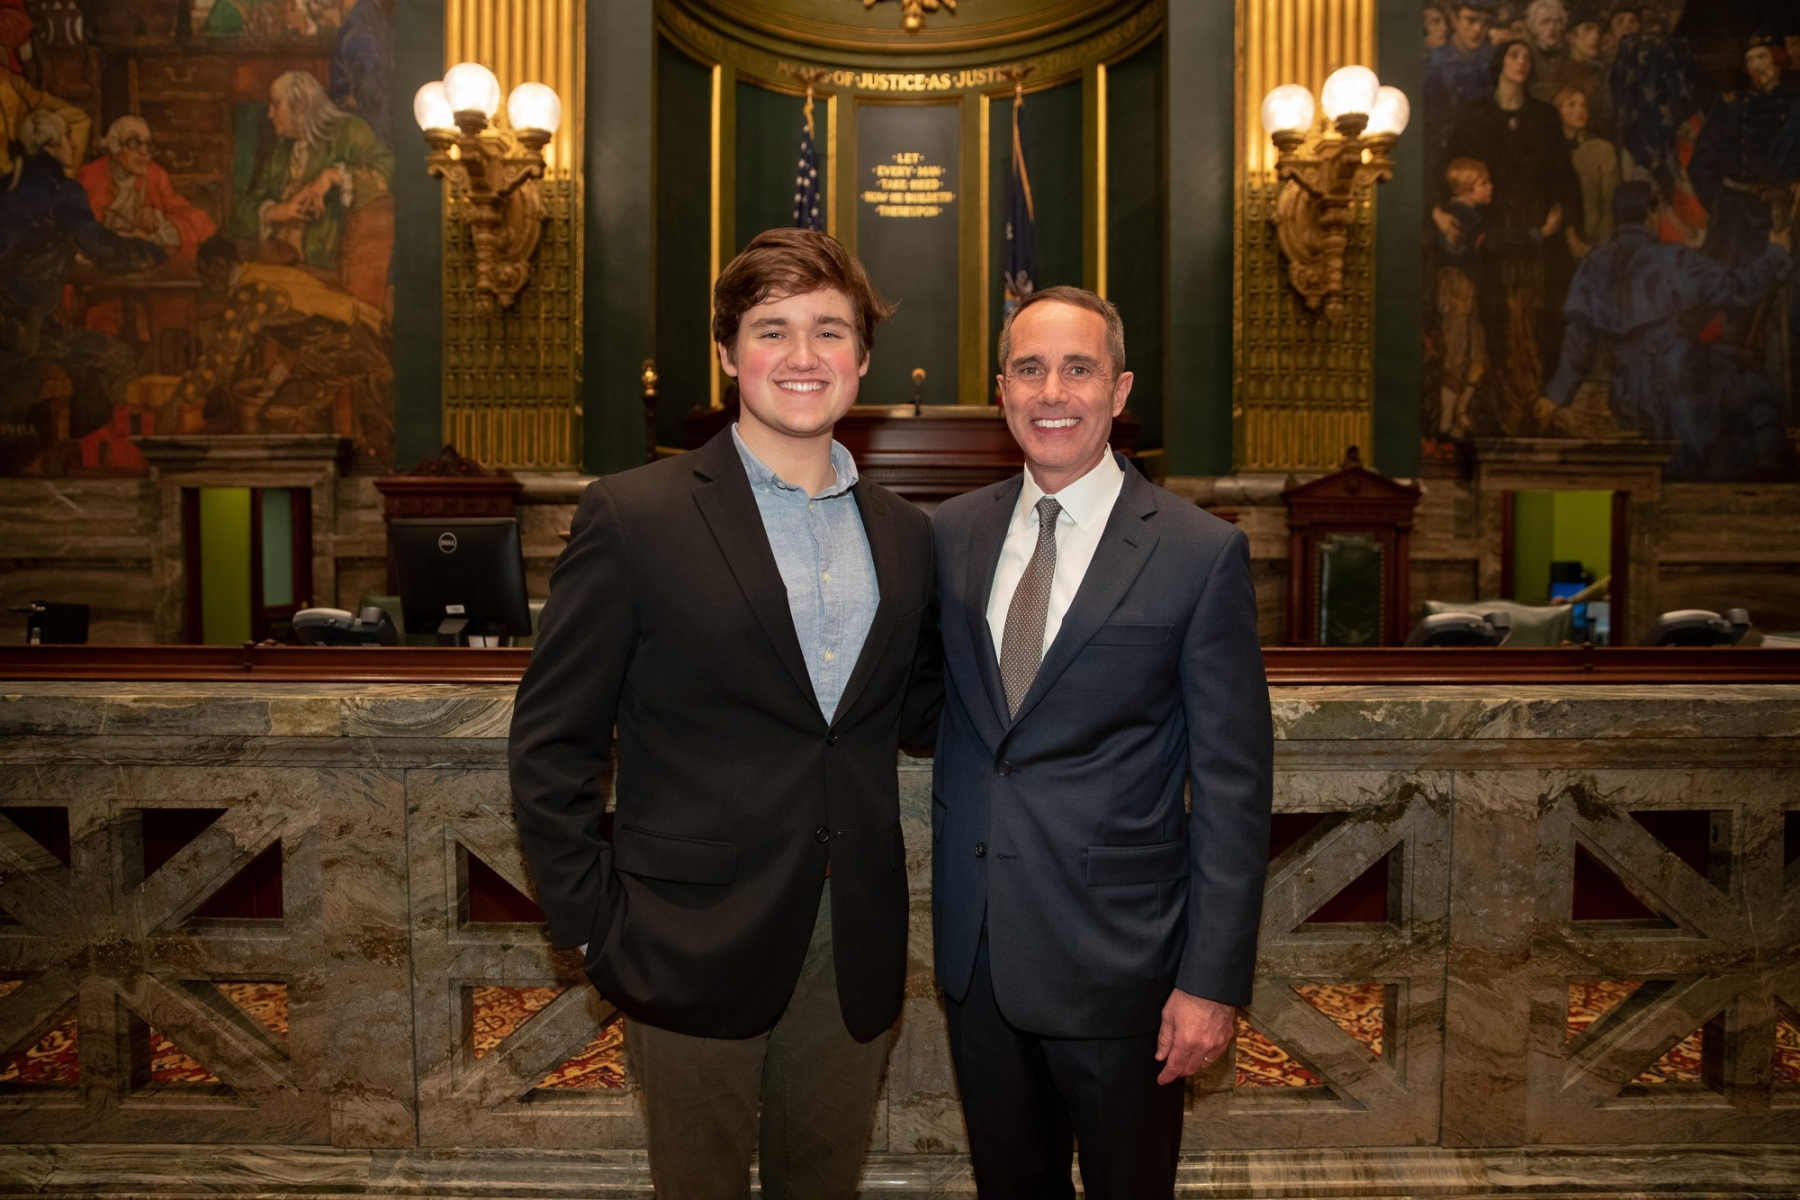 January 1, 2019: Senator Steve Santarsiero is sworn  into his 1st term in the Pennsylvania State Senate.